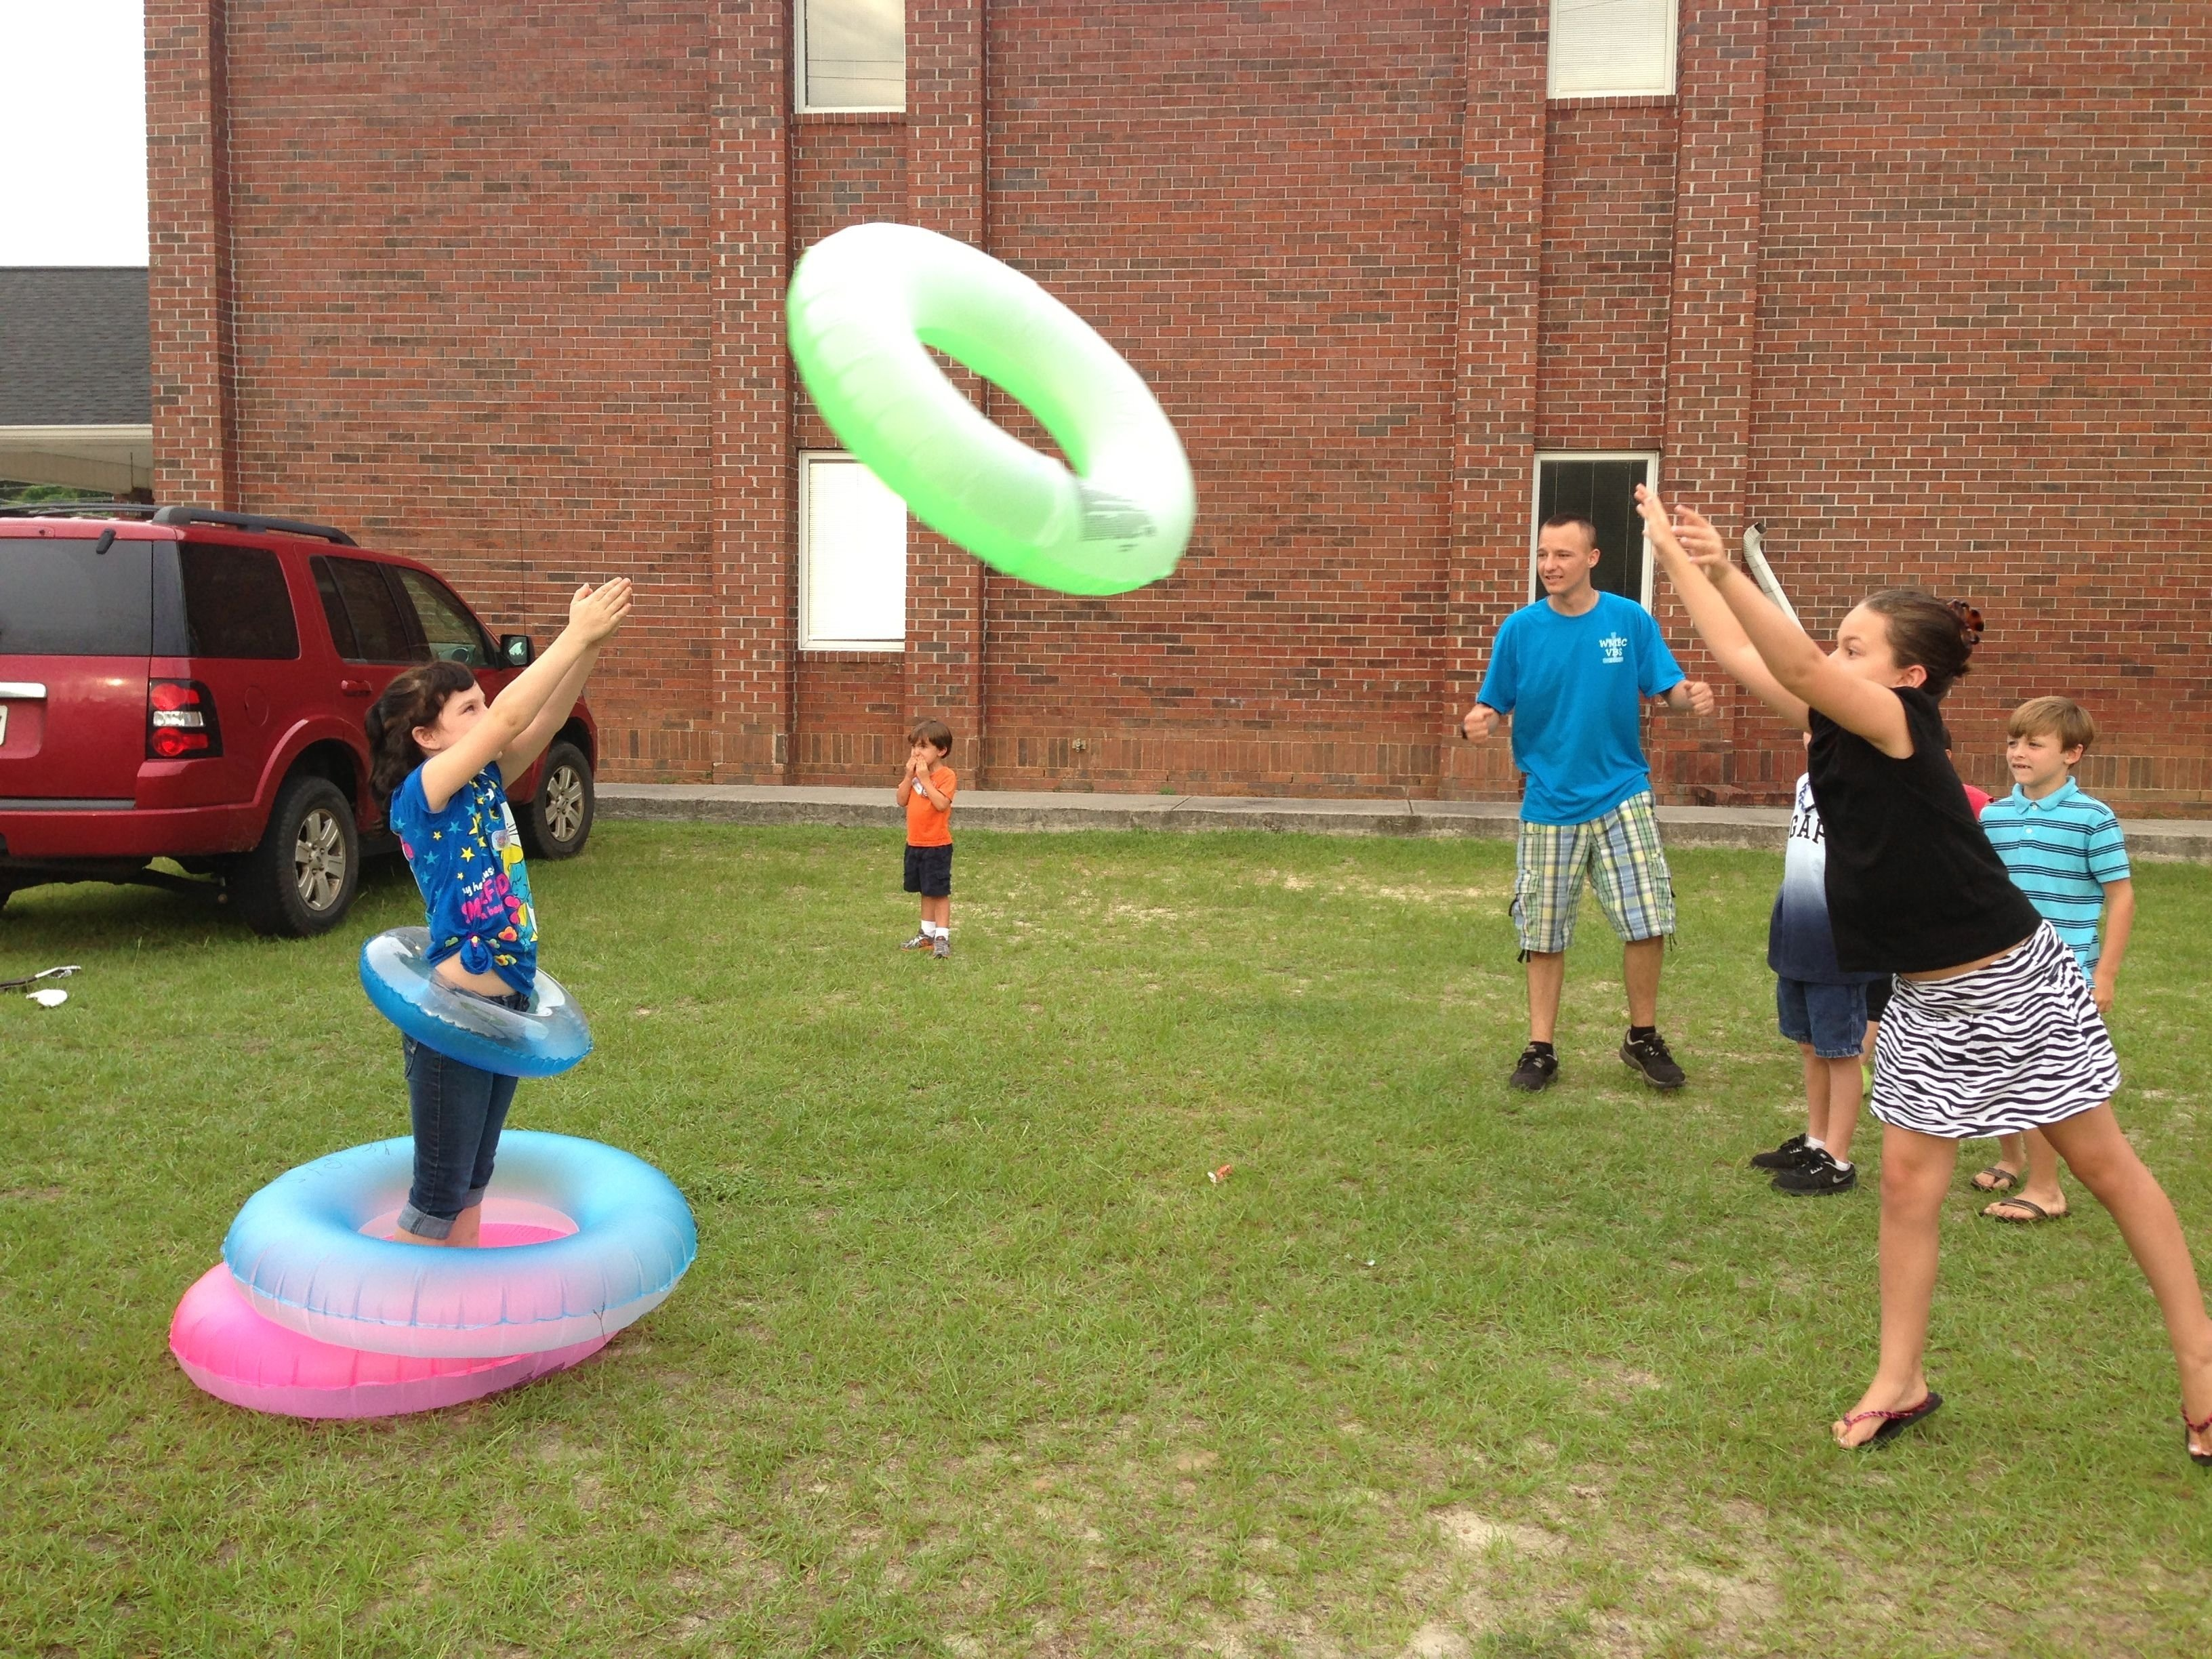 10 Awesome Relay Race Ideas For Adults this could be a really fun camp game human ring toss kids fun 2020